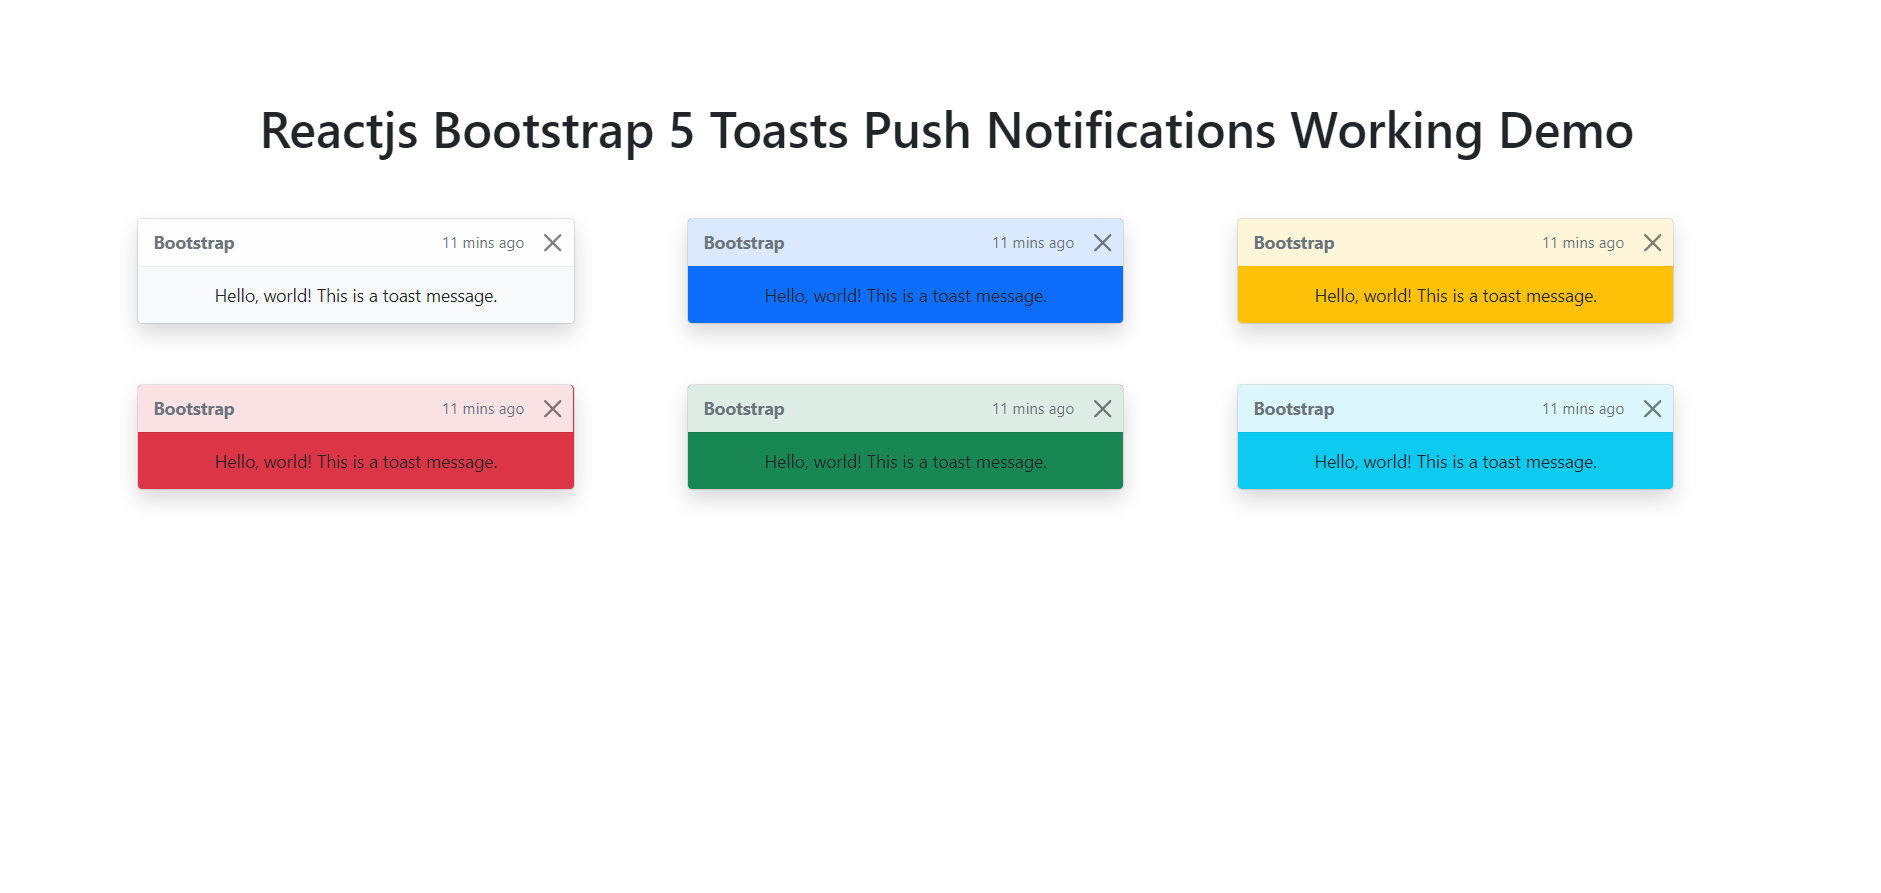 Reactjs Bootstrap 5 Toasts Push Notifications Working Demo